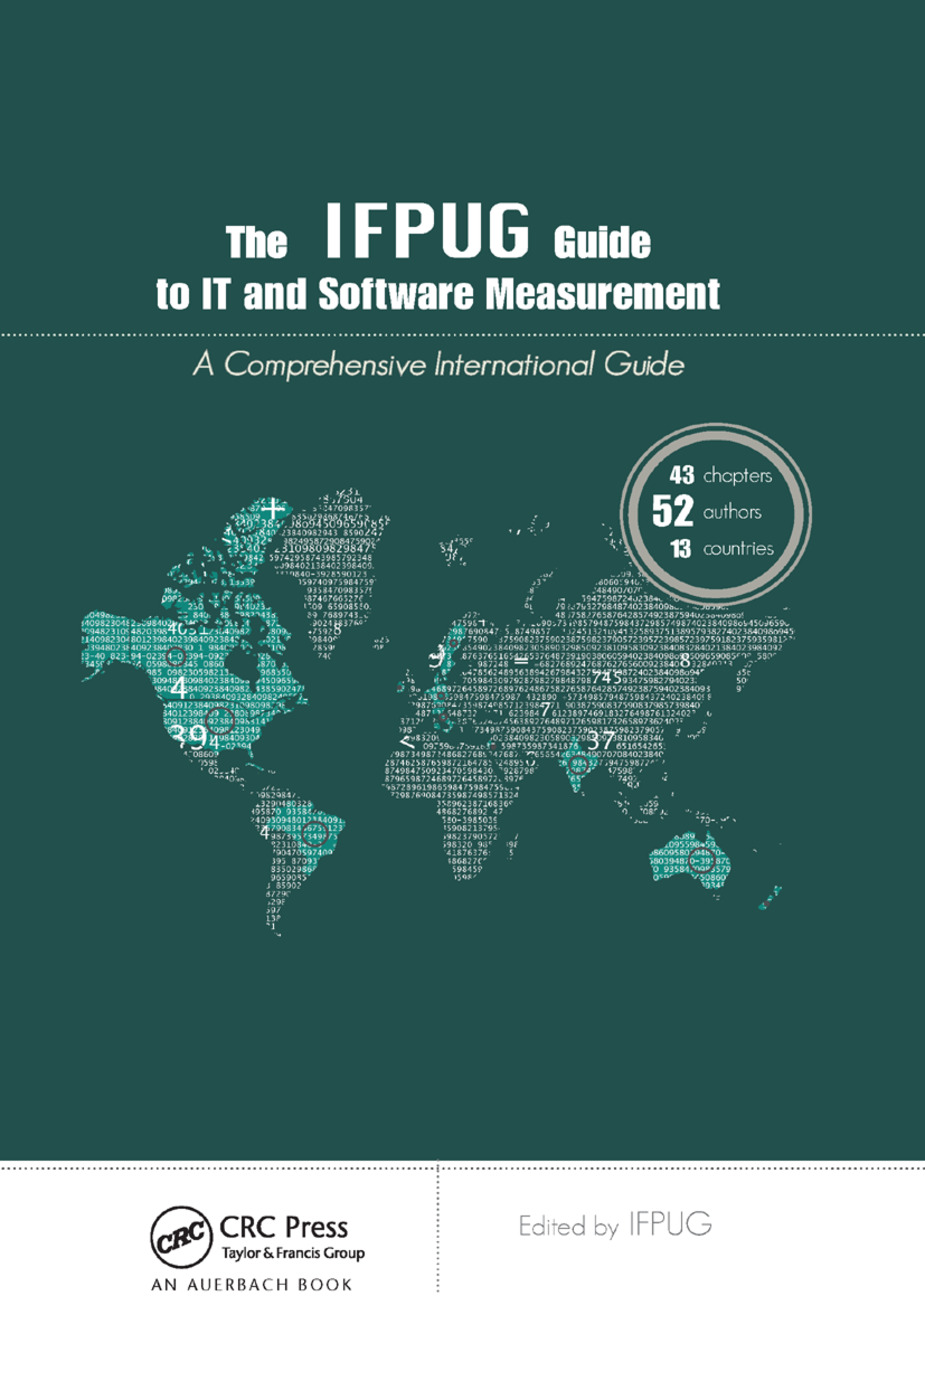 The IFPUG Guide to IT and Software Measurement